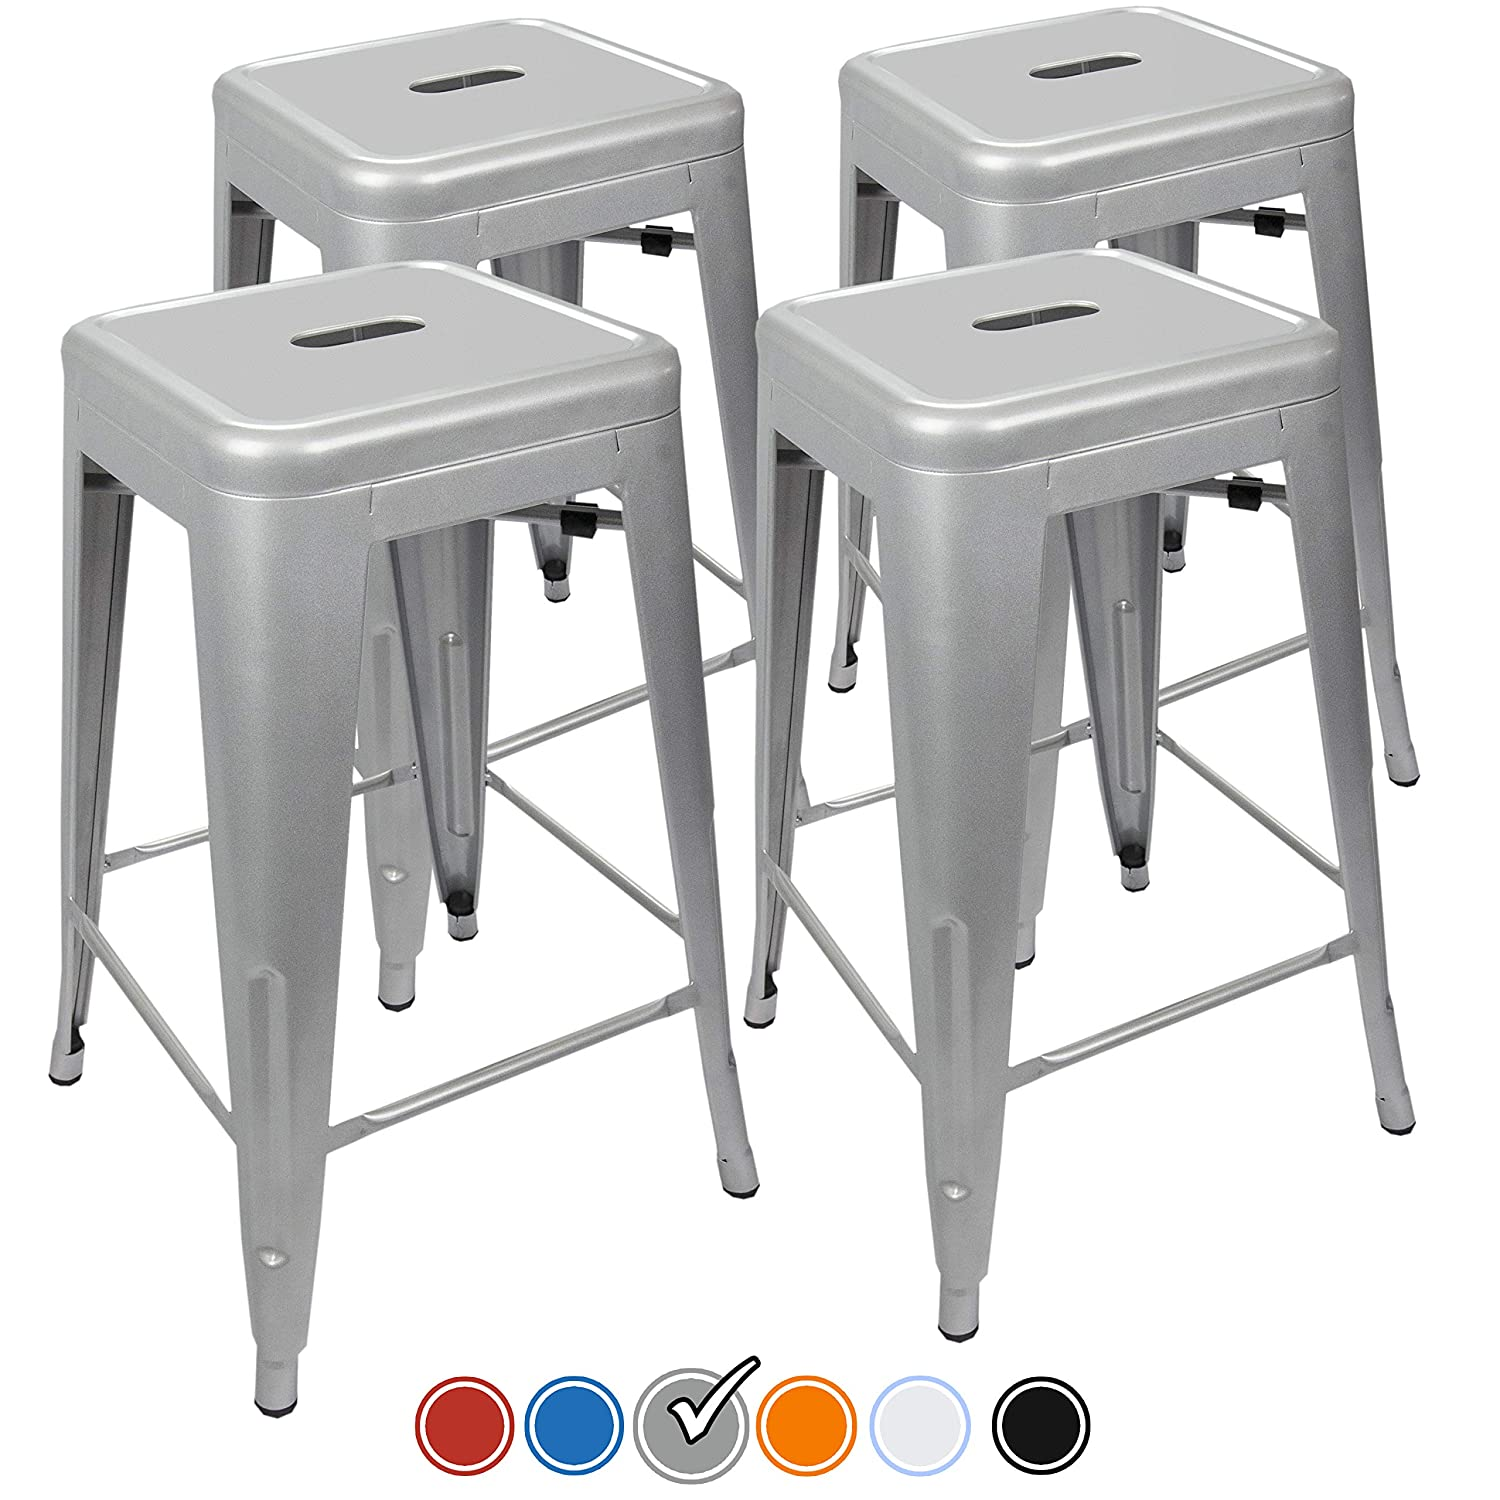 UrbanMod 24 Counter Height Bar Stools 330lb Capacity Gray Kitchen Chair Island Outdoor Industrial Galvanized Metal, Silver